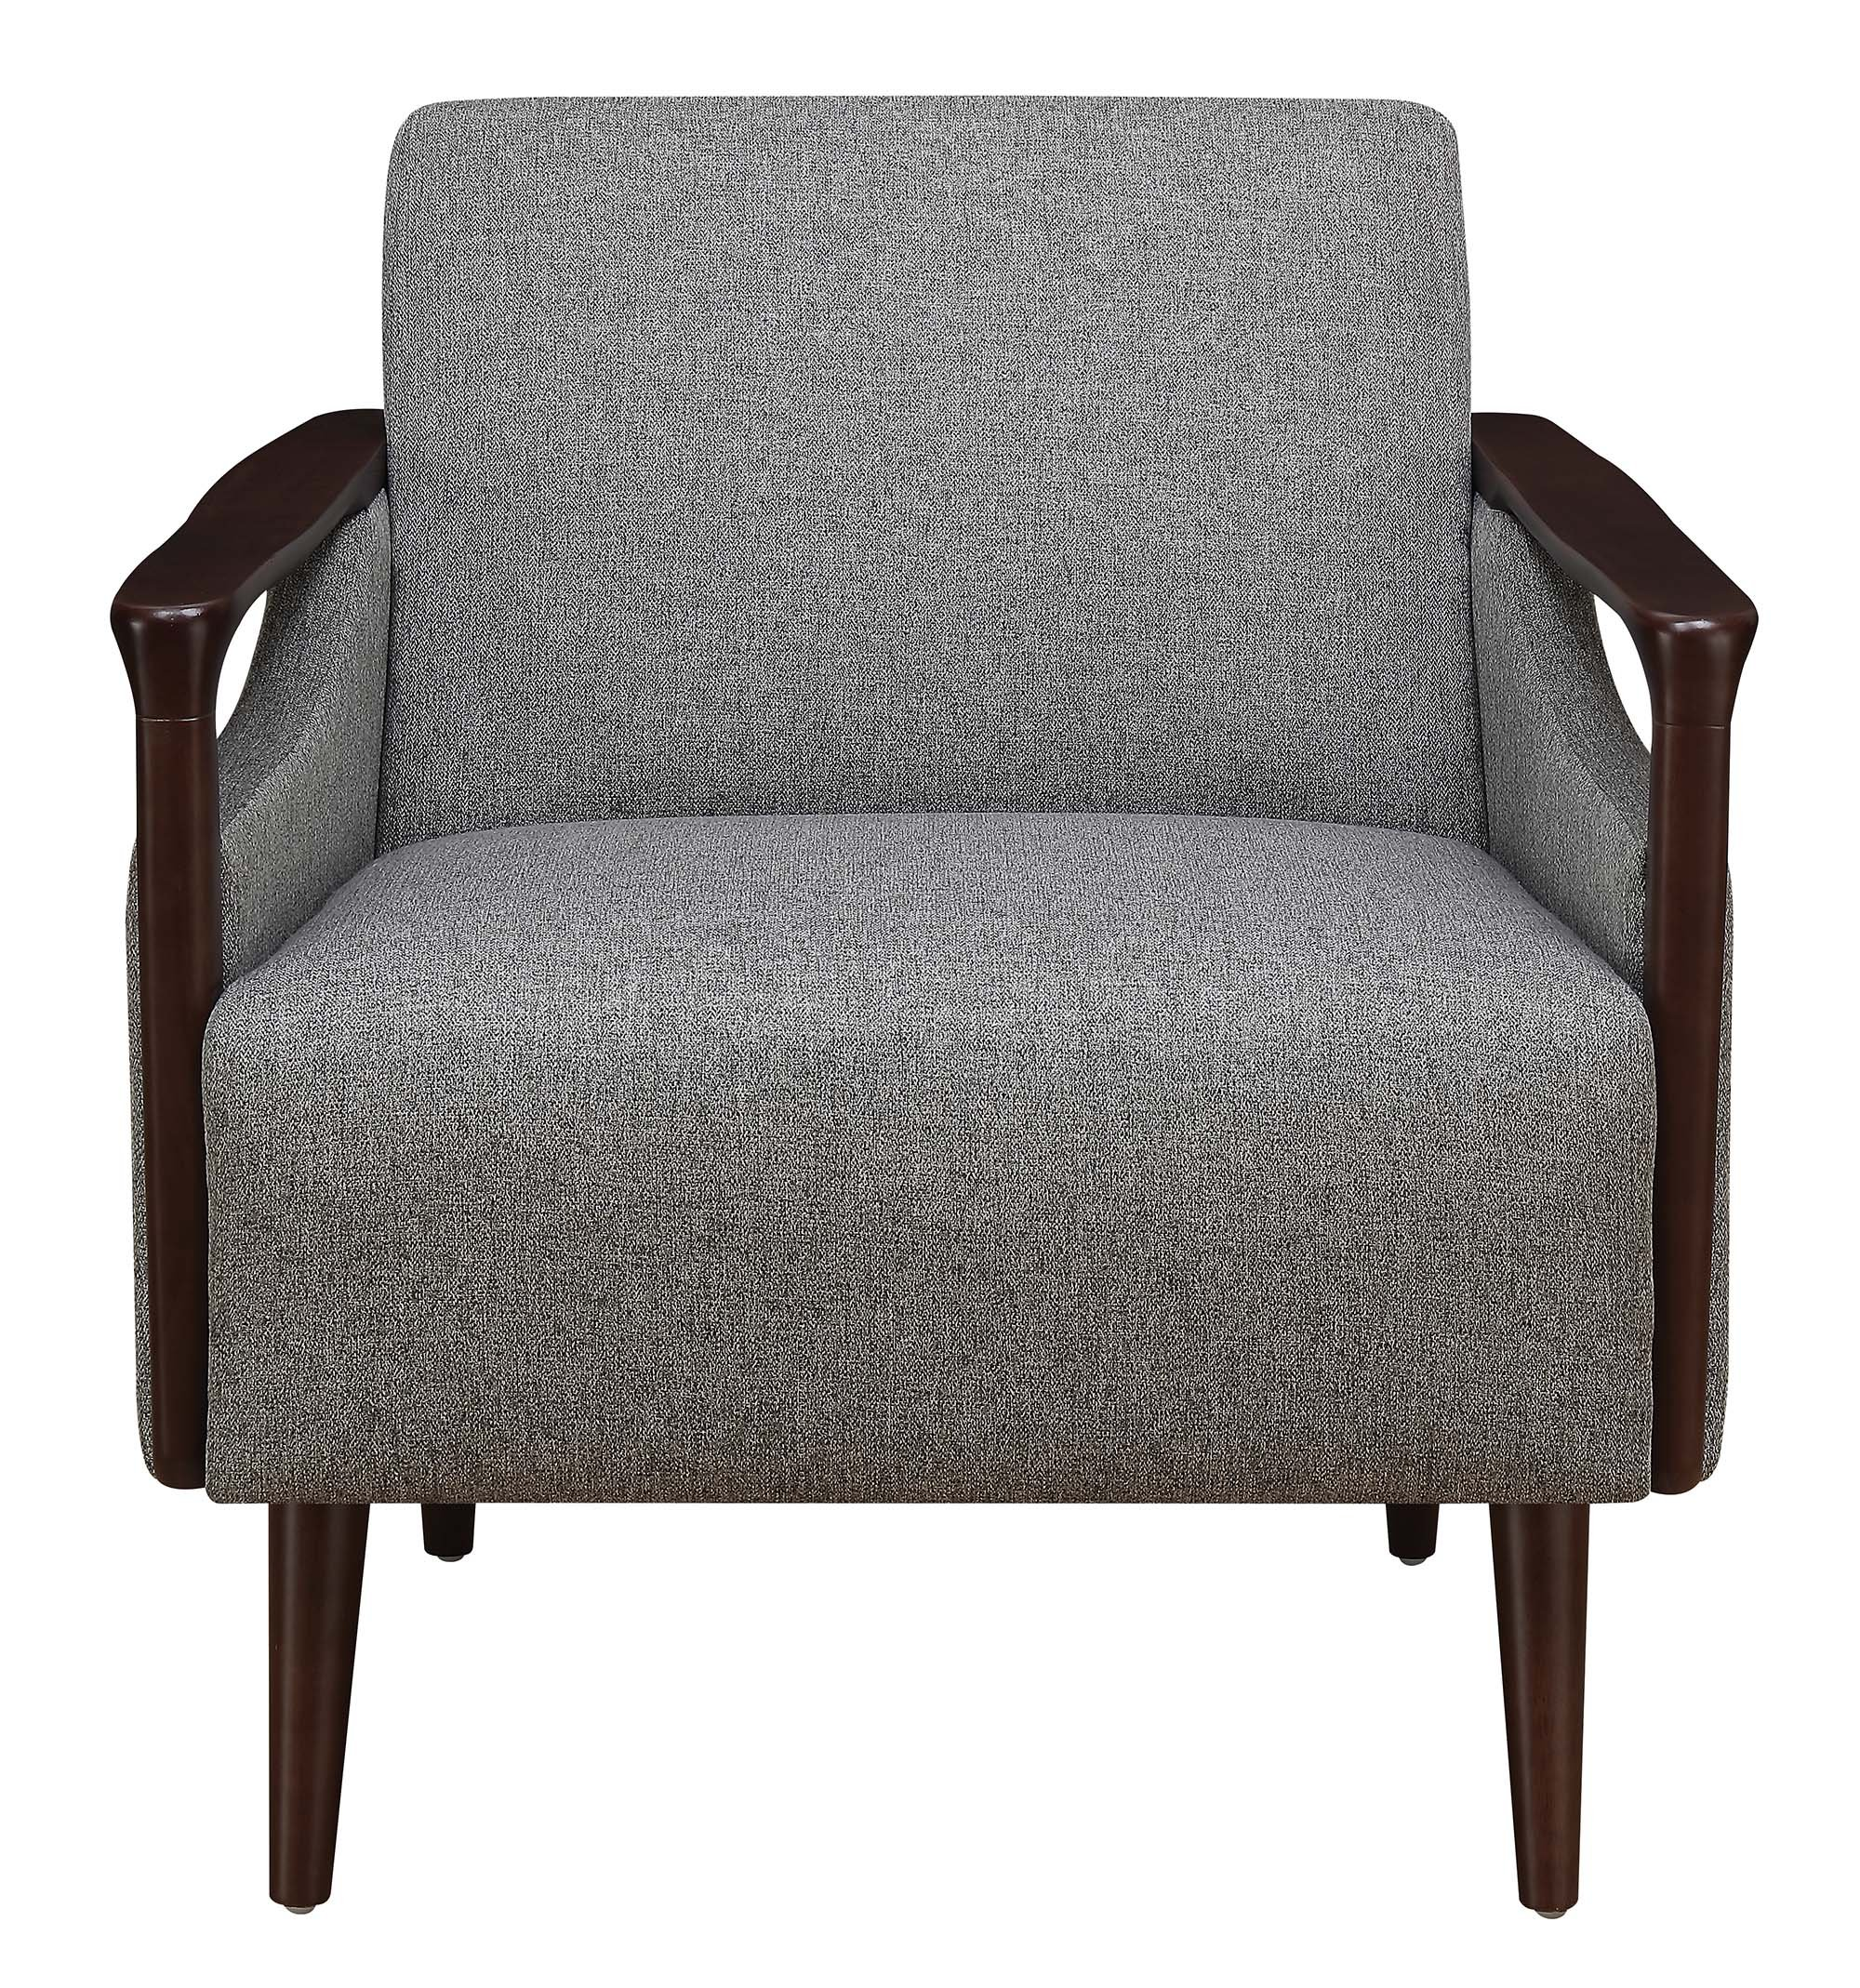 Coaster Home Furnishings Upholstered Accent Chair Grey and Brown - Set includes: One (1) accent chair Materials: Fabric, pine and plywood Material Content: 100% polyester - living-room-furniture, living-room, accent-chairs - A1V0 3eHM8L -